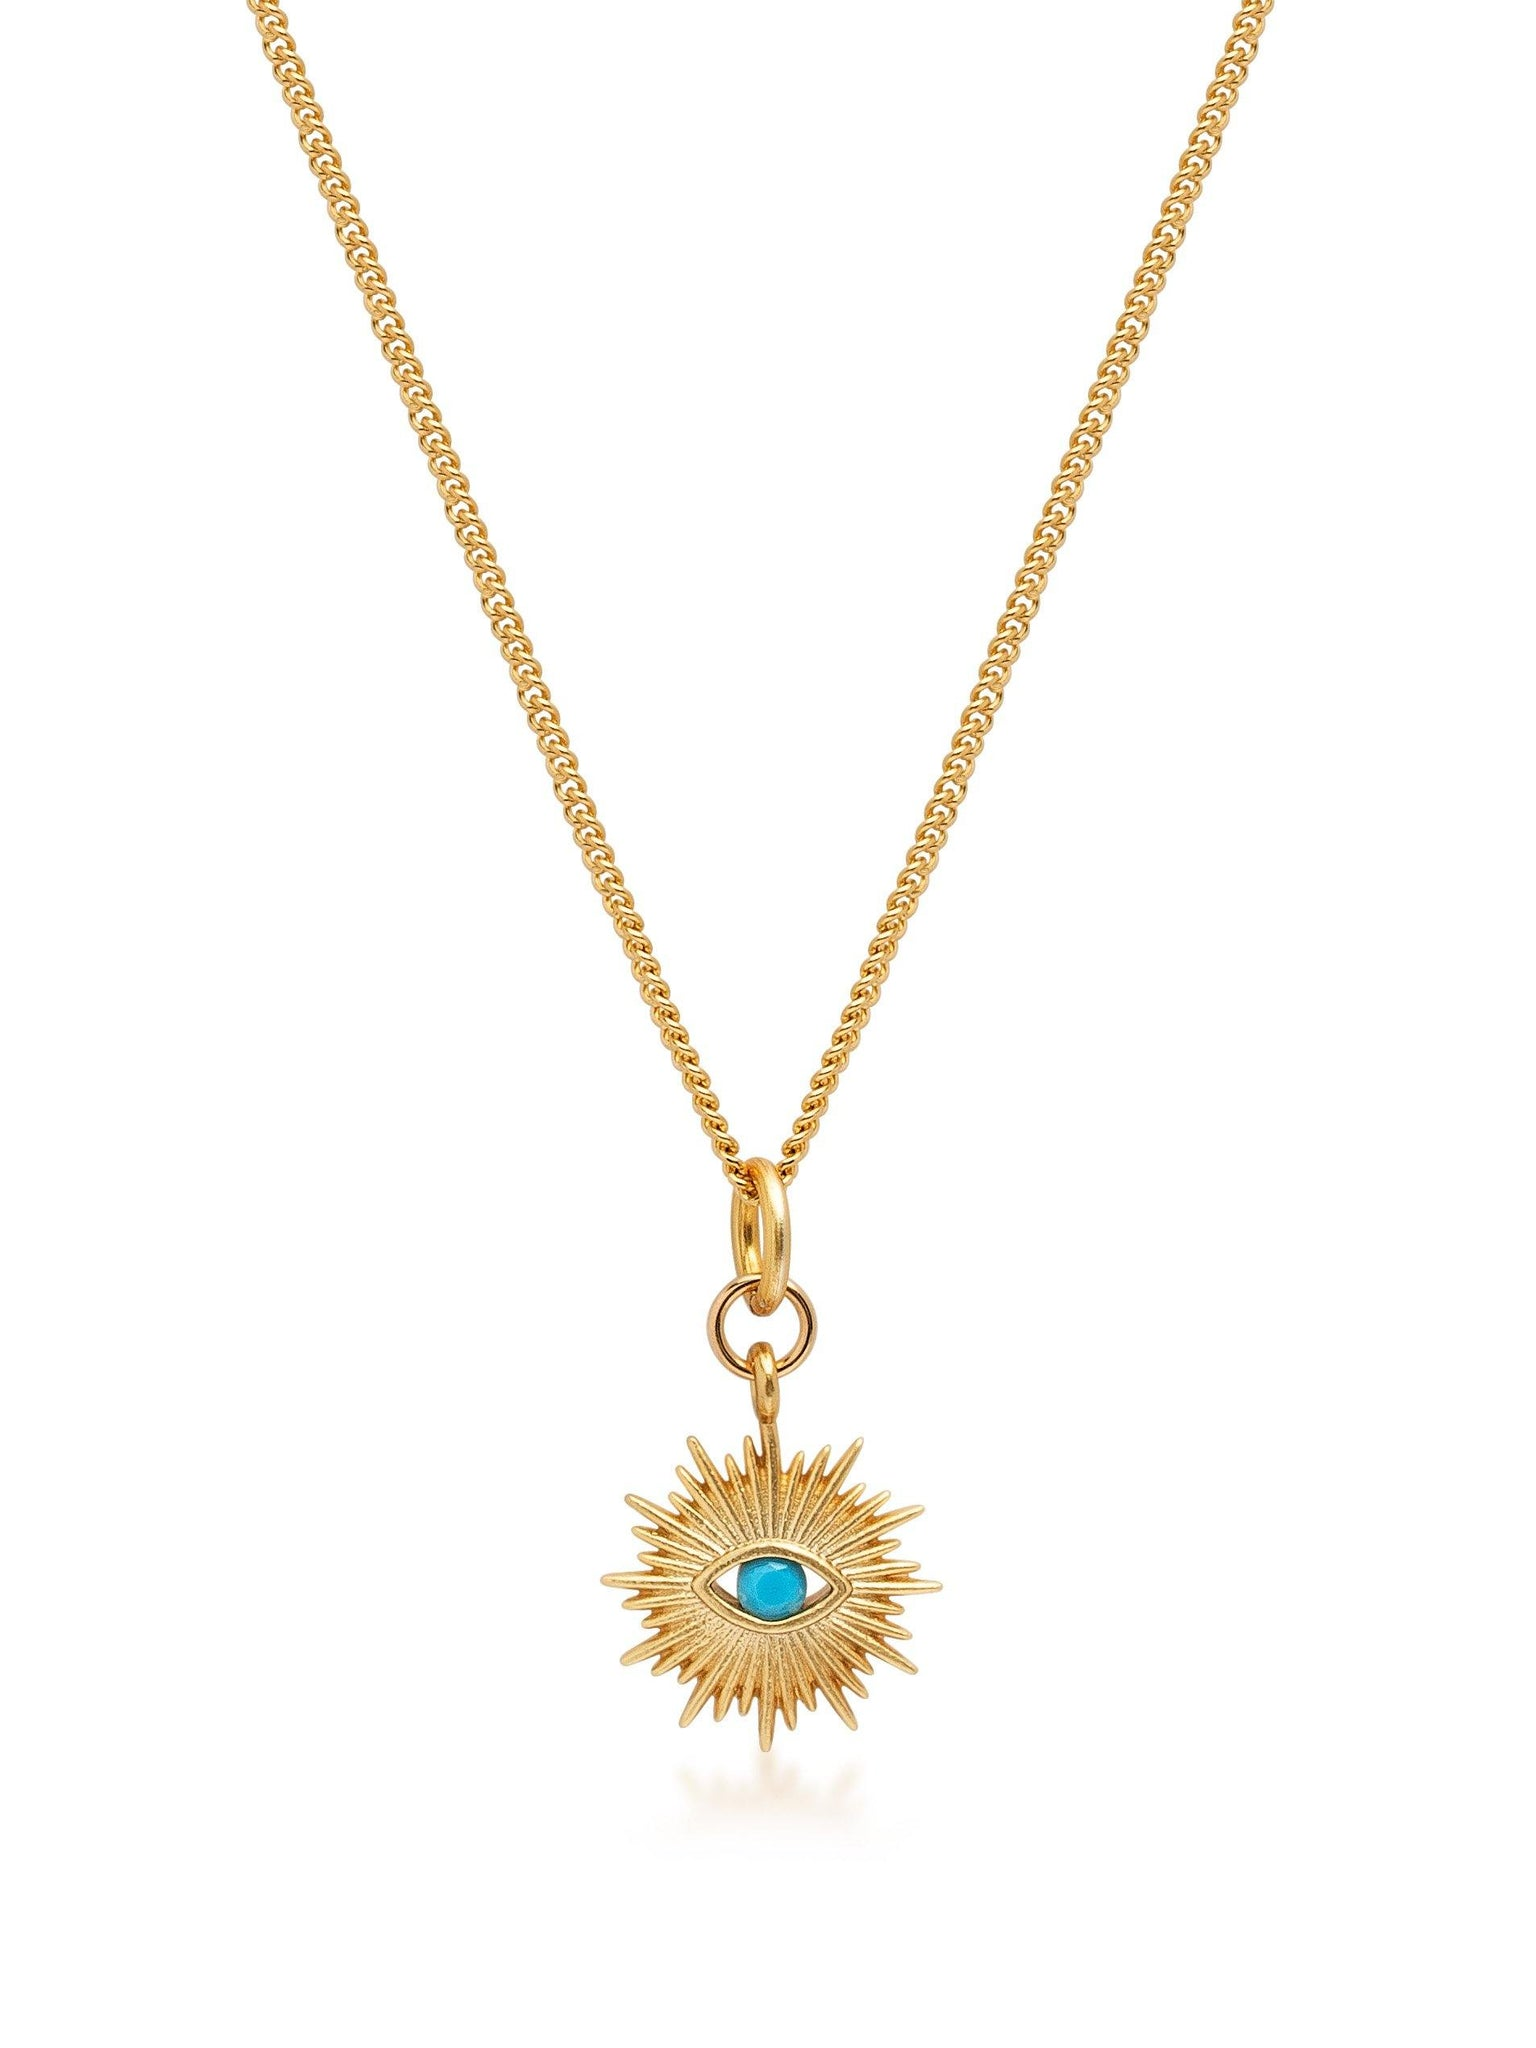 Women's Gold Necklace with Mini Evil Eye Pendant - NIALAYA INC